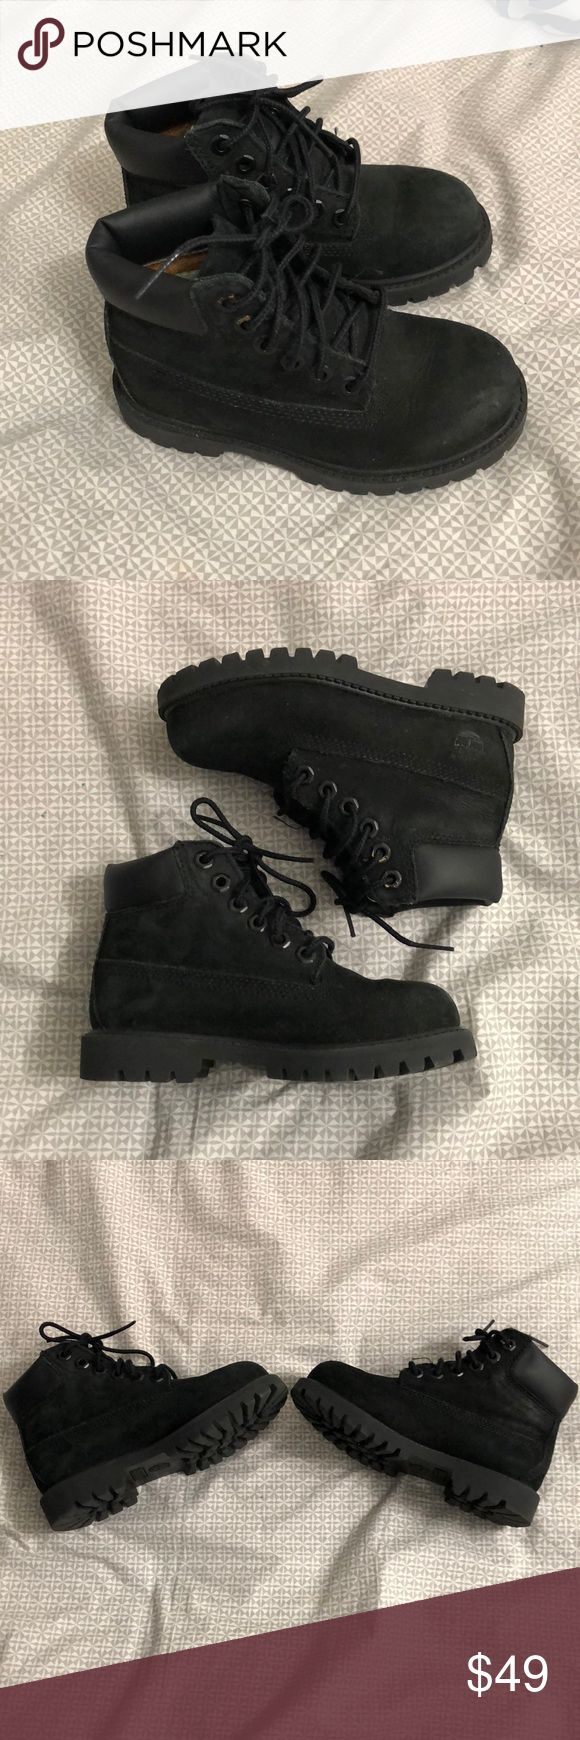 Timberland black boots for kids size 9.5 almost like new good condition only used 2 time Timberland Shoes Boots